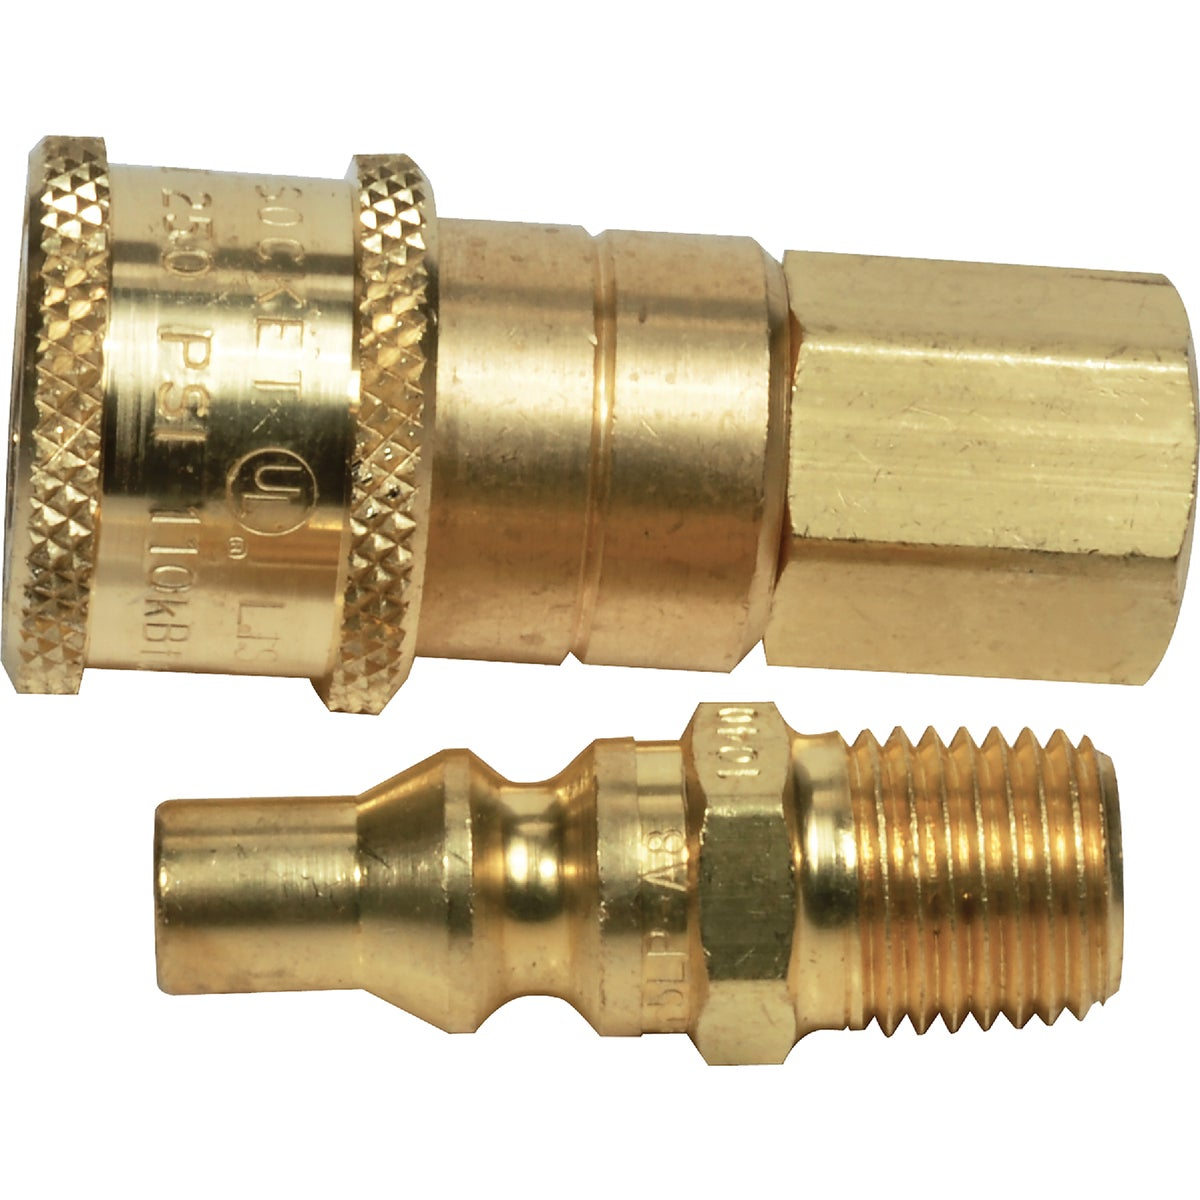 QUICK GAS CONNECTOR - F276190 by Mr Heater Corp